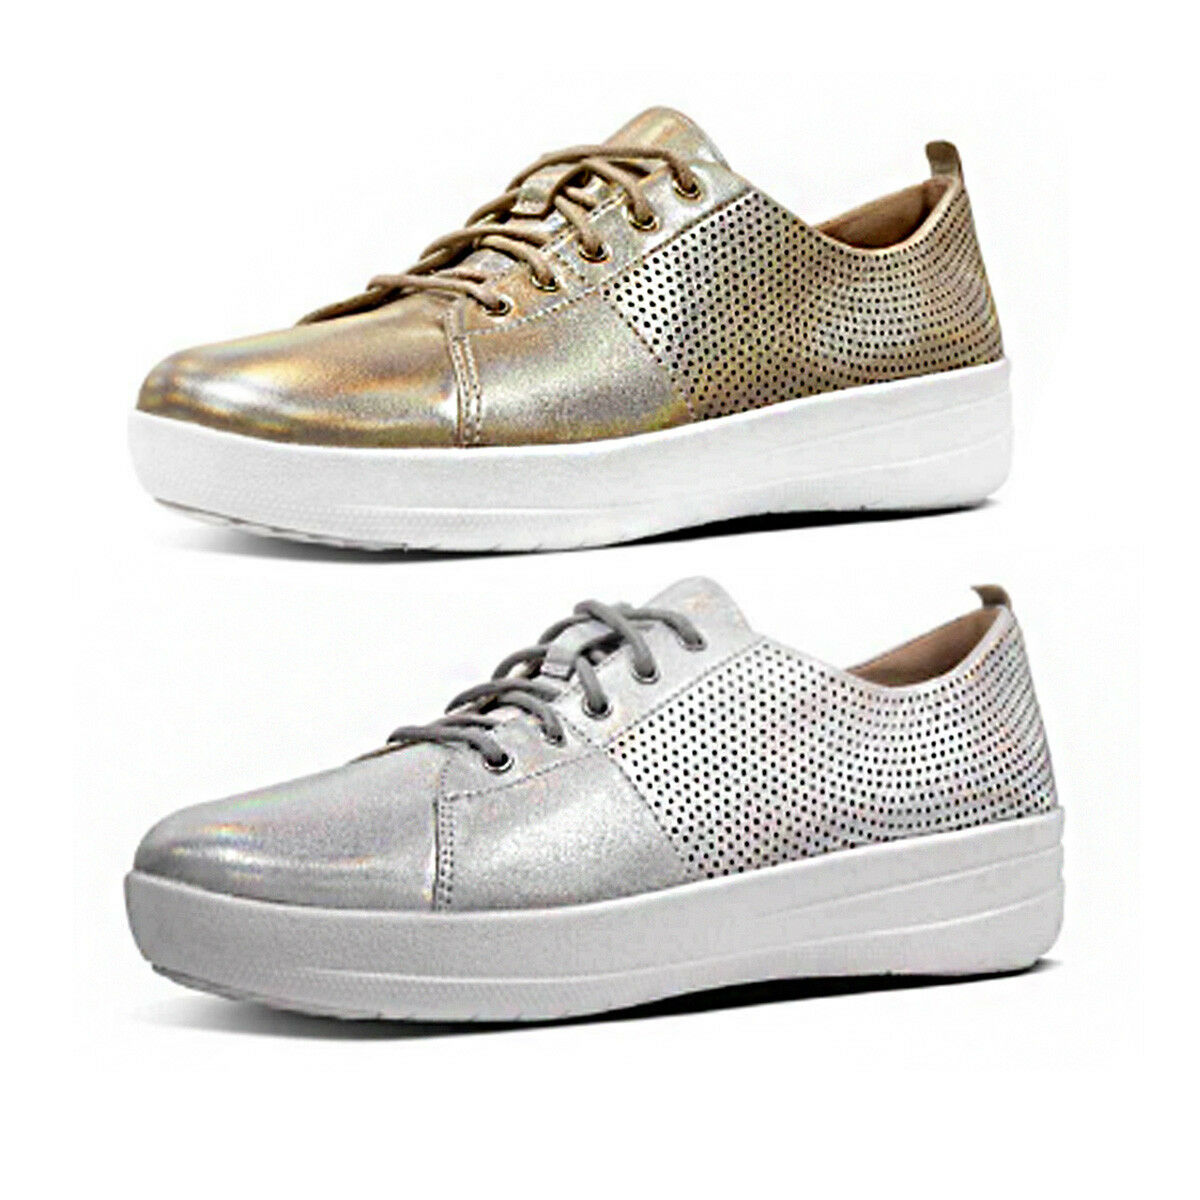 Fitflop F Sporty Scoop Cut Perforated Women Leather Gold Sneaker Size UK 3 - 8